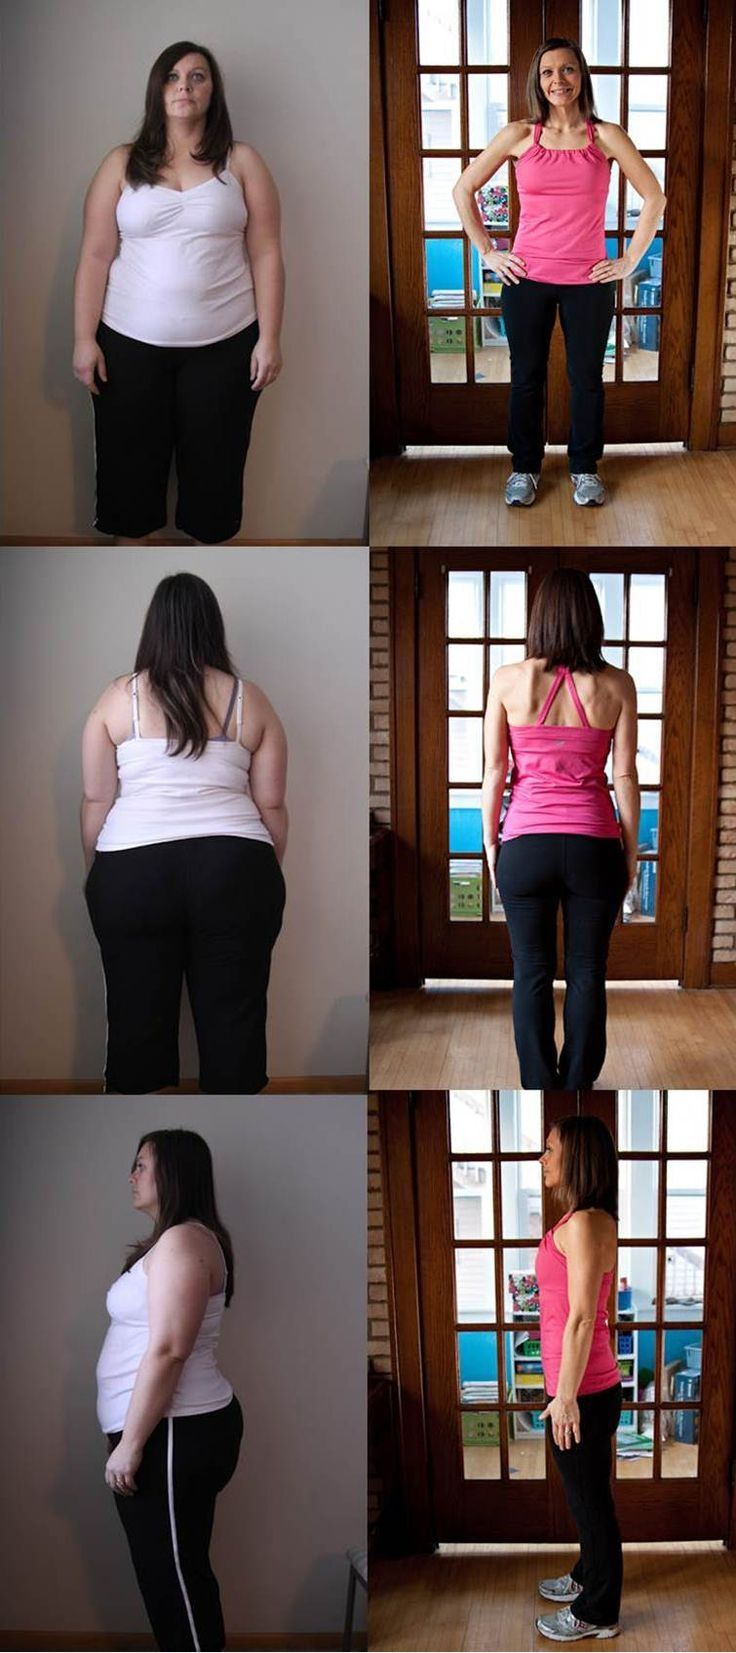 she was 260 lbs - now she is 135 lbs great inspiration